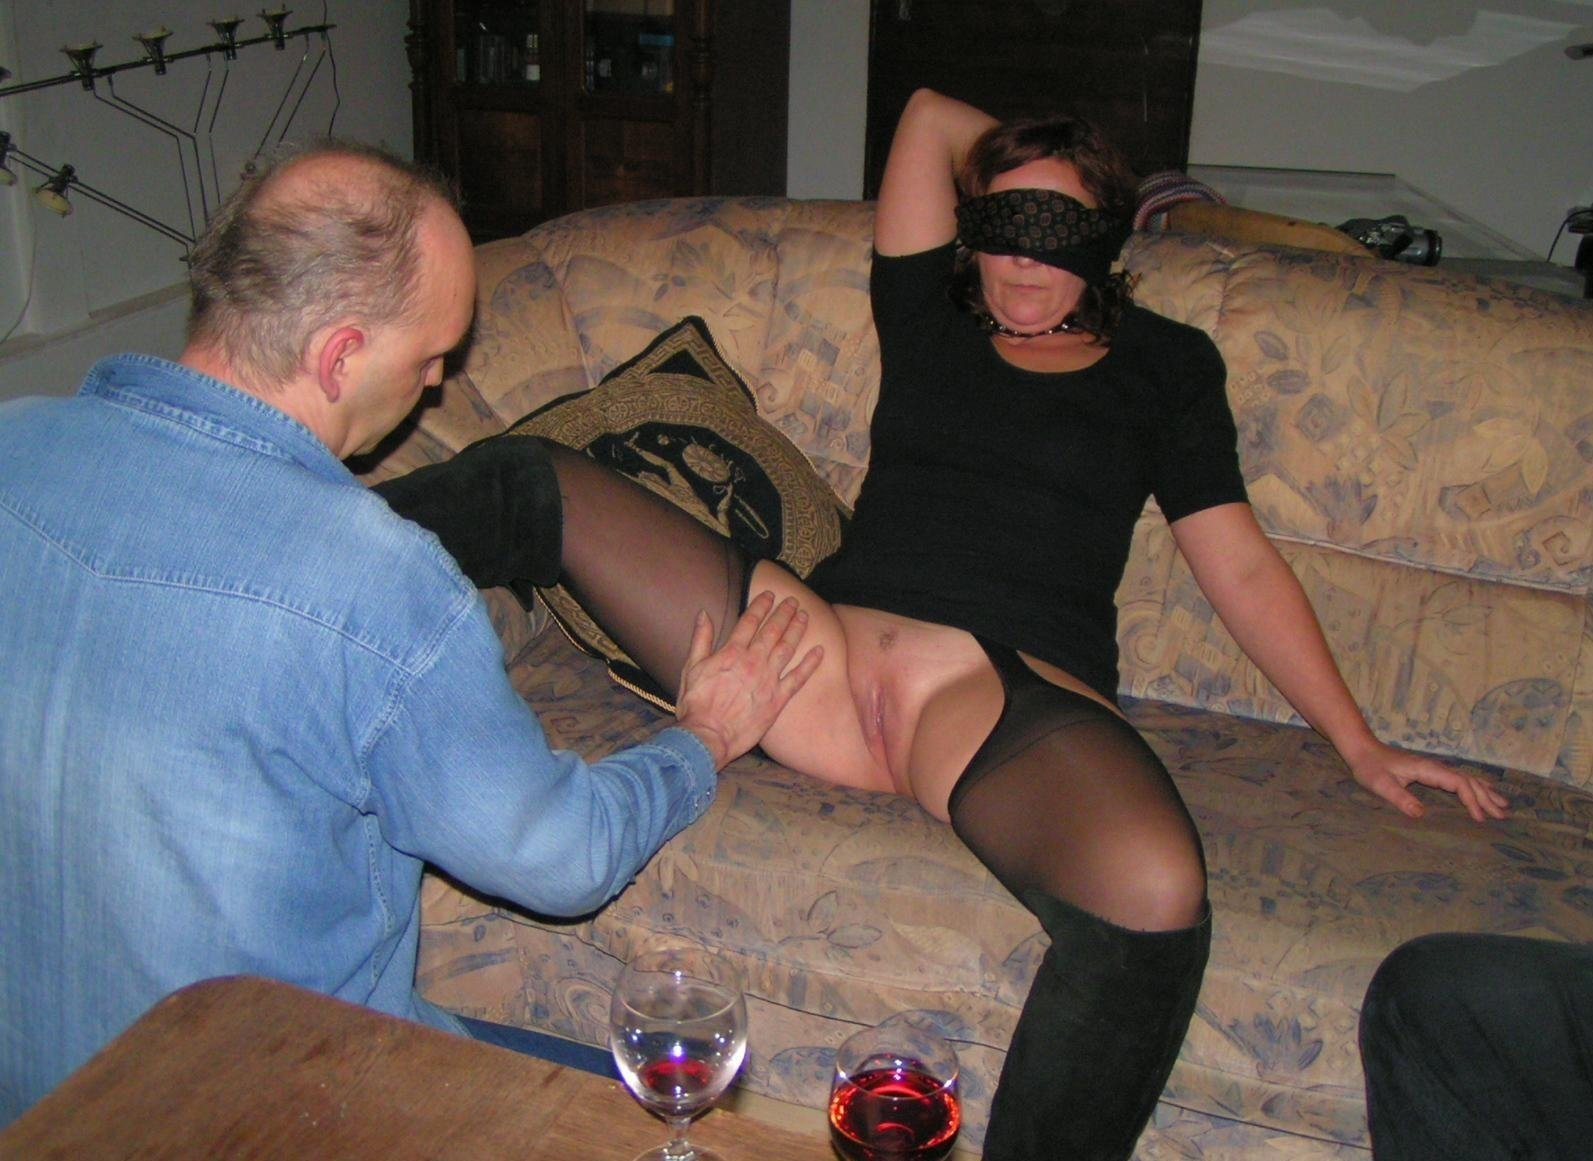 Wife teasing husbands friends while out